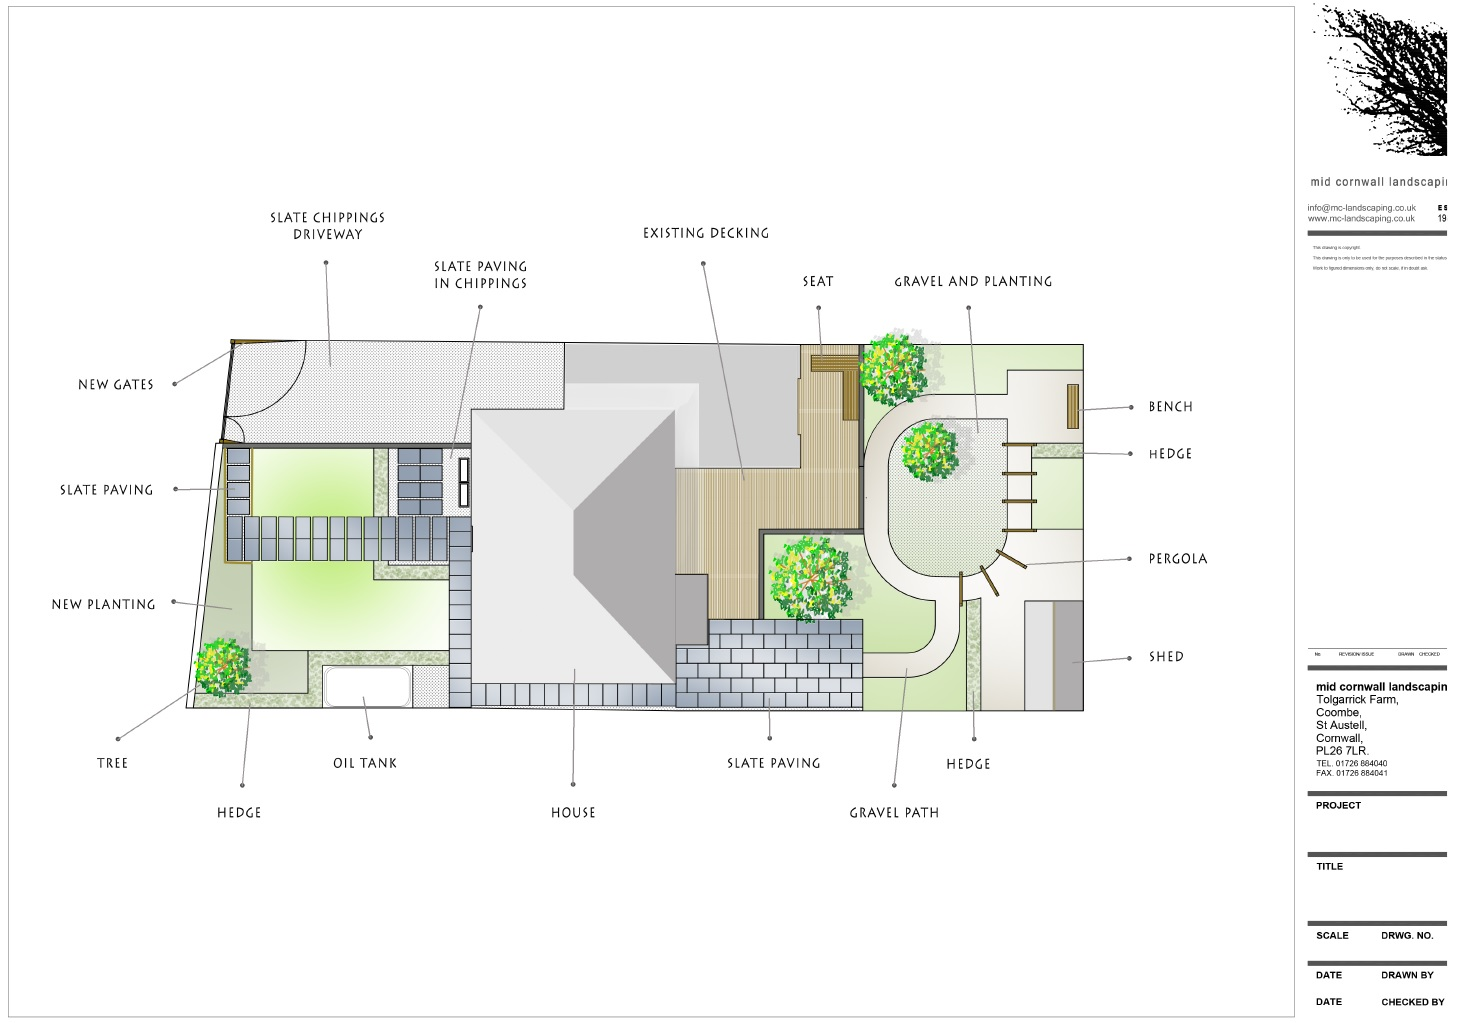 Plan view - Cornish Garden